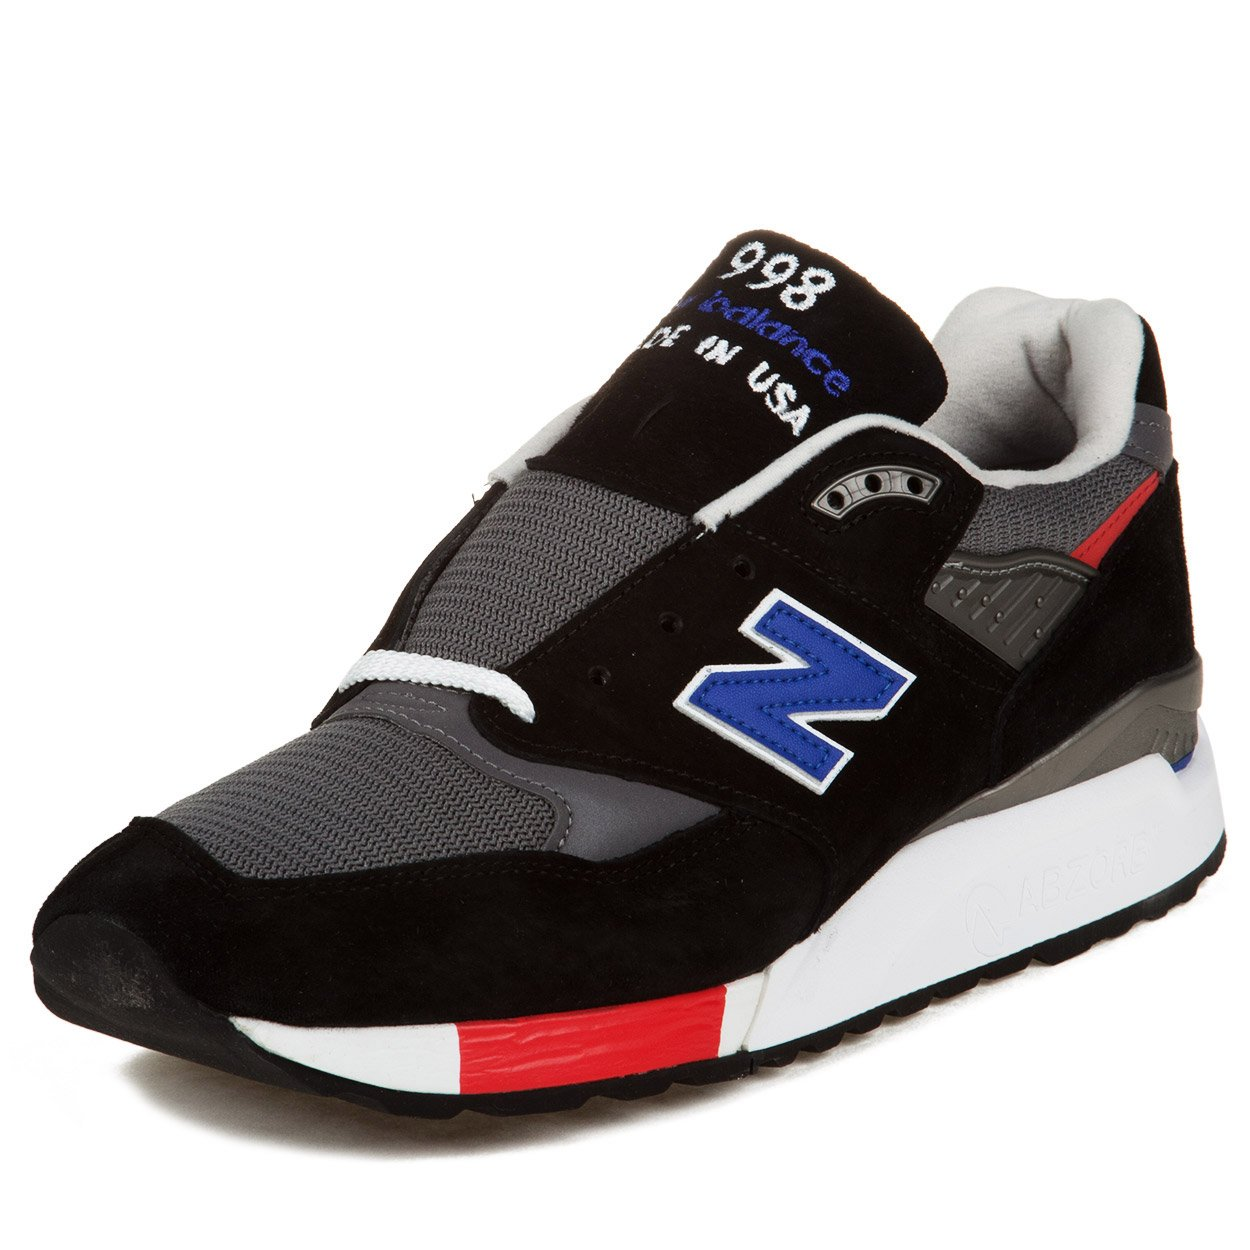 New Balance Mens 998 Age of Exporation Walking Shoe 8 D(M) US Black With Blue & Red